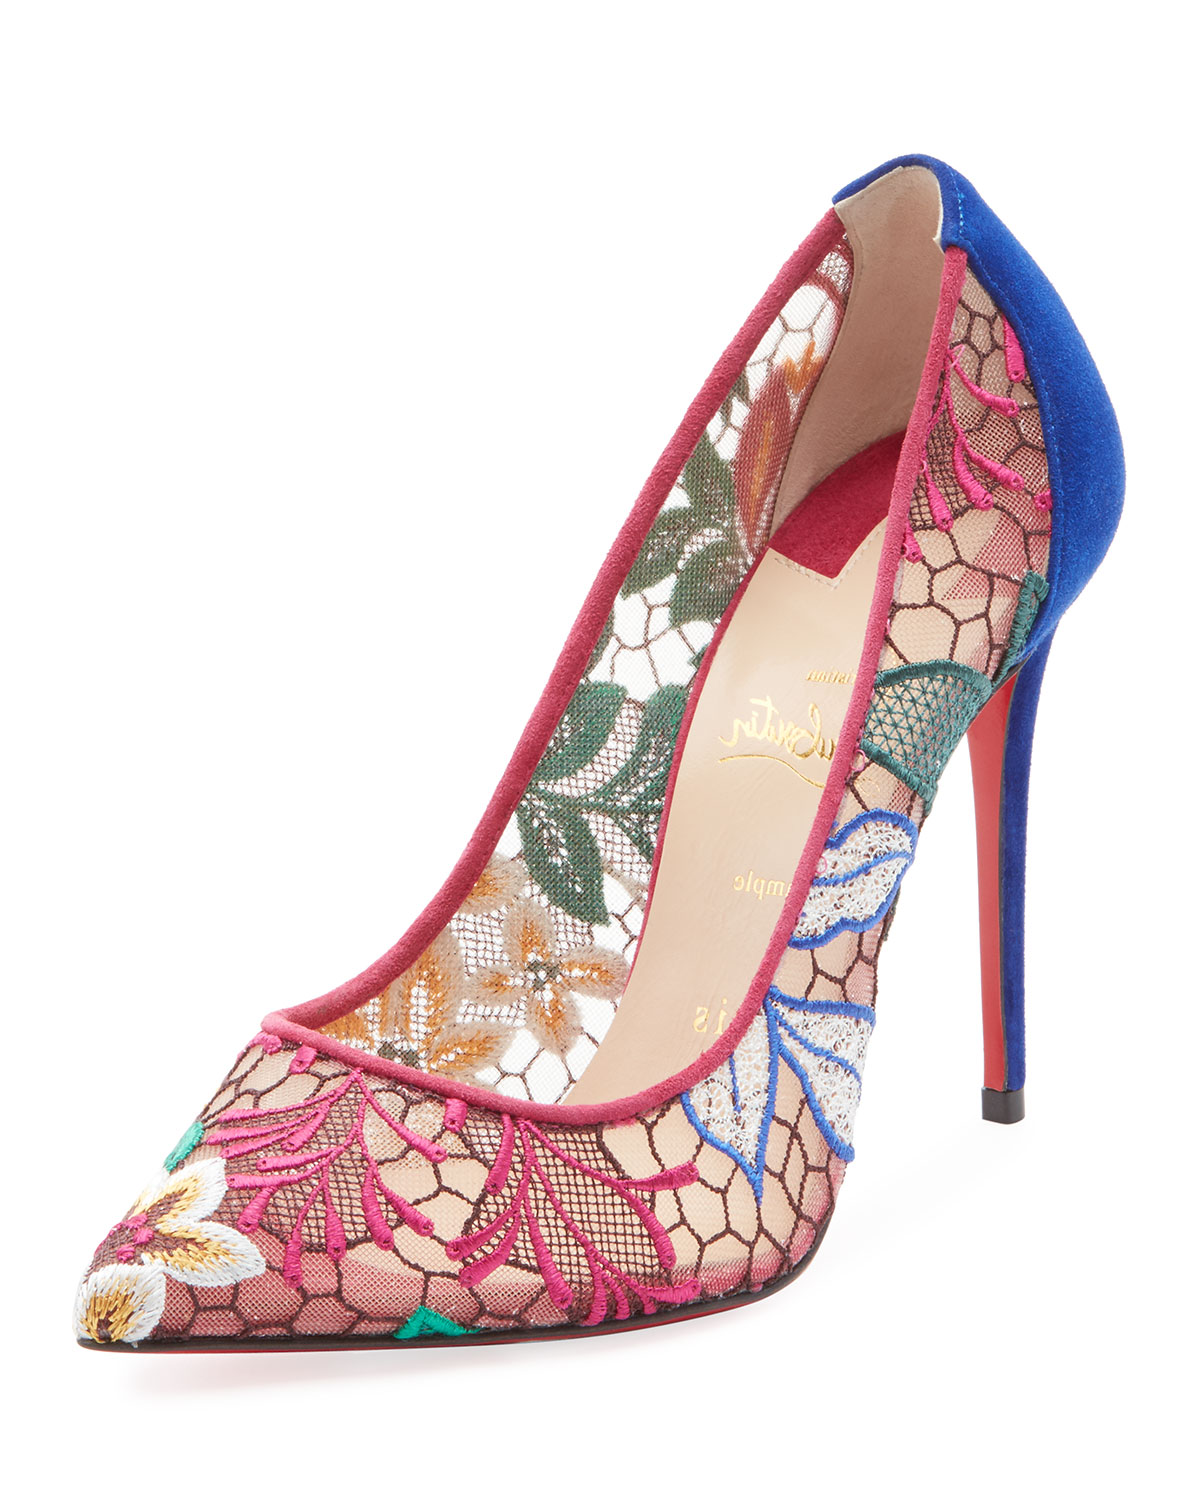 CHRISTIAN LOUBOUTIN FOLLIES LACE 100MM EMBROIDERED RED SOLE PUMP